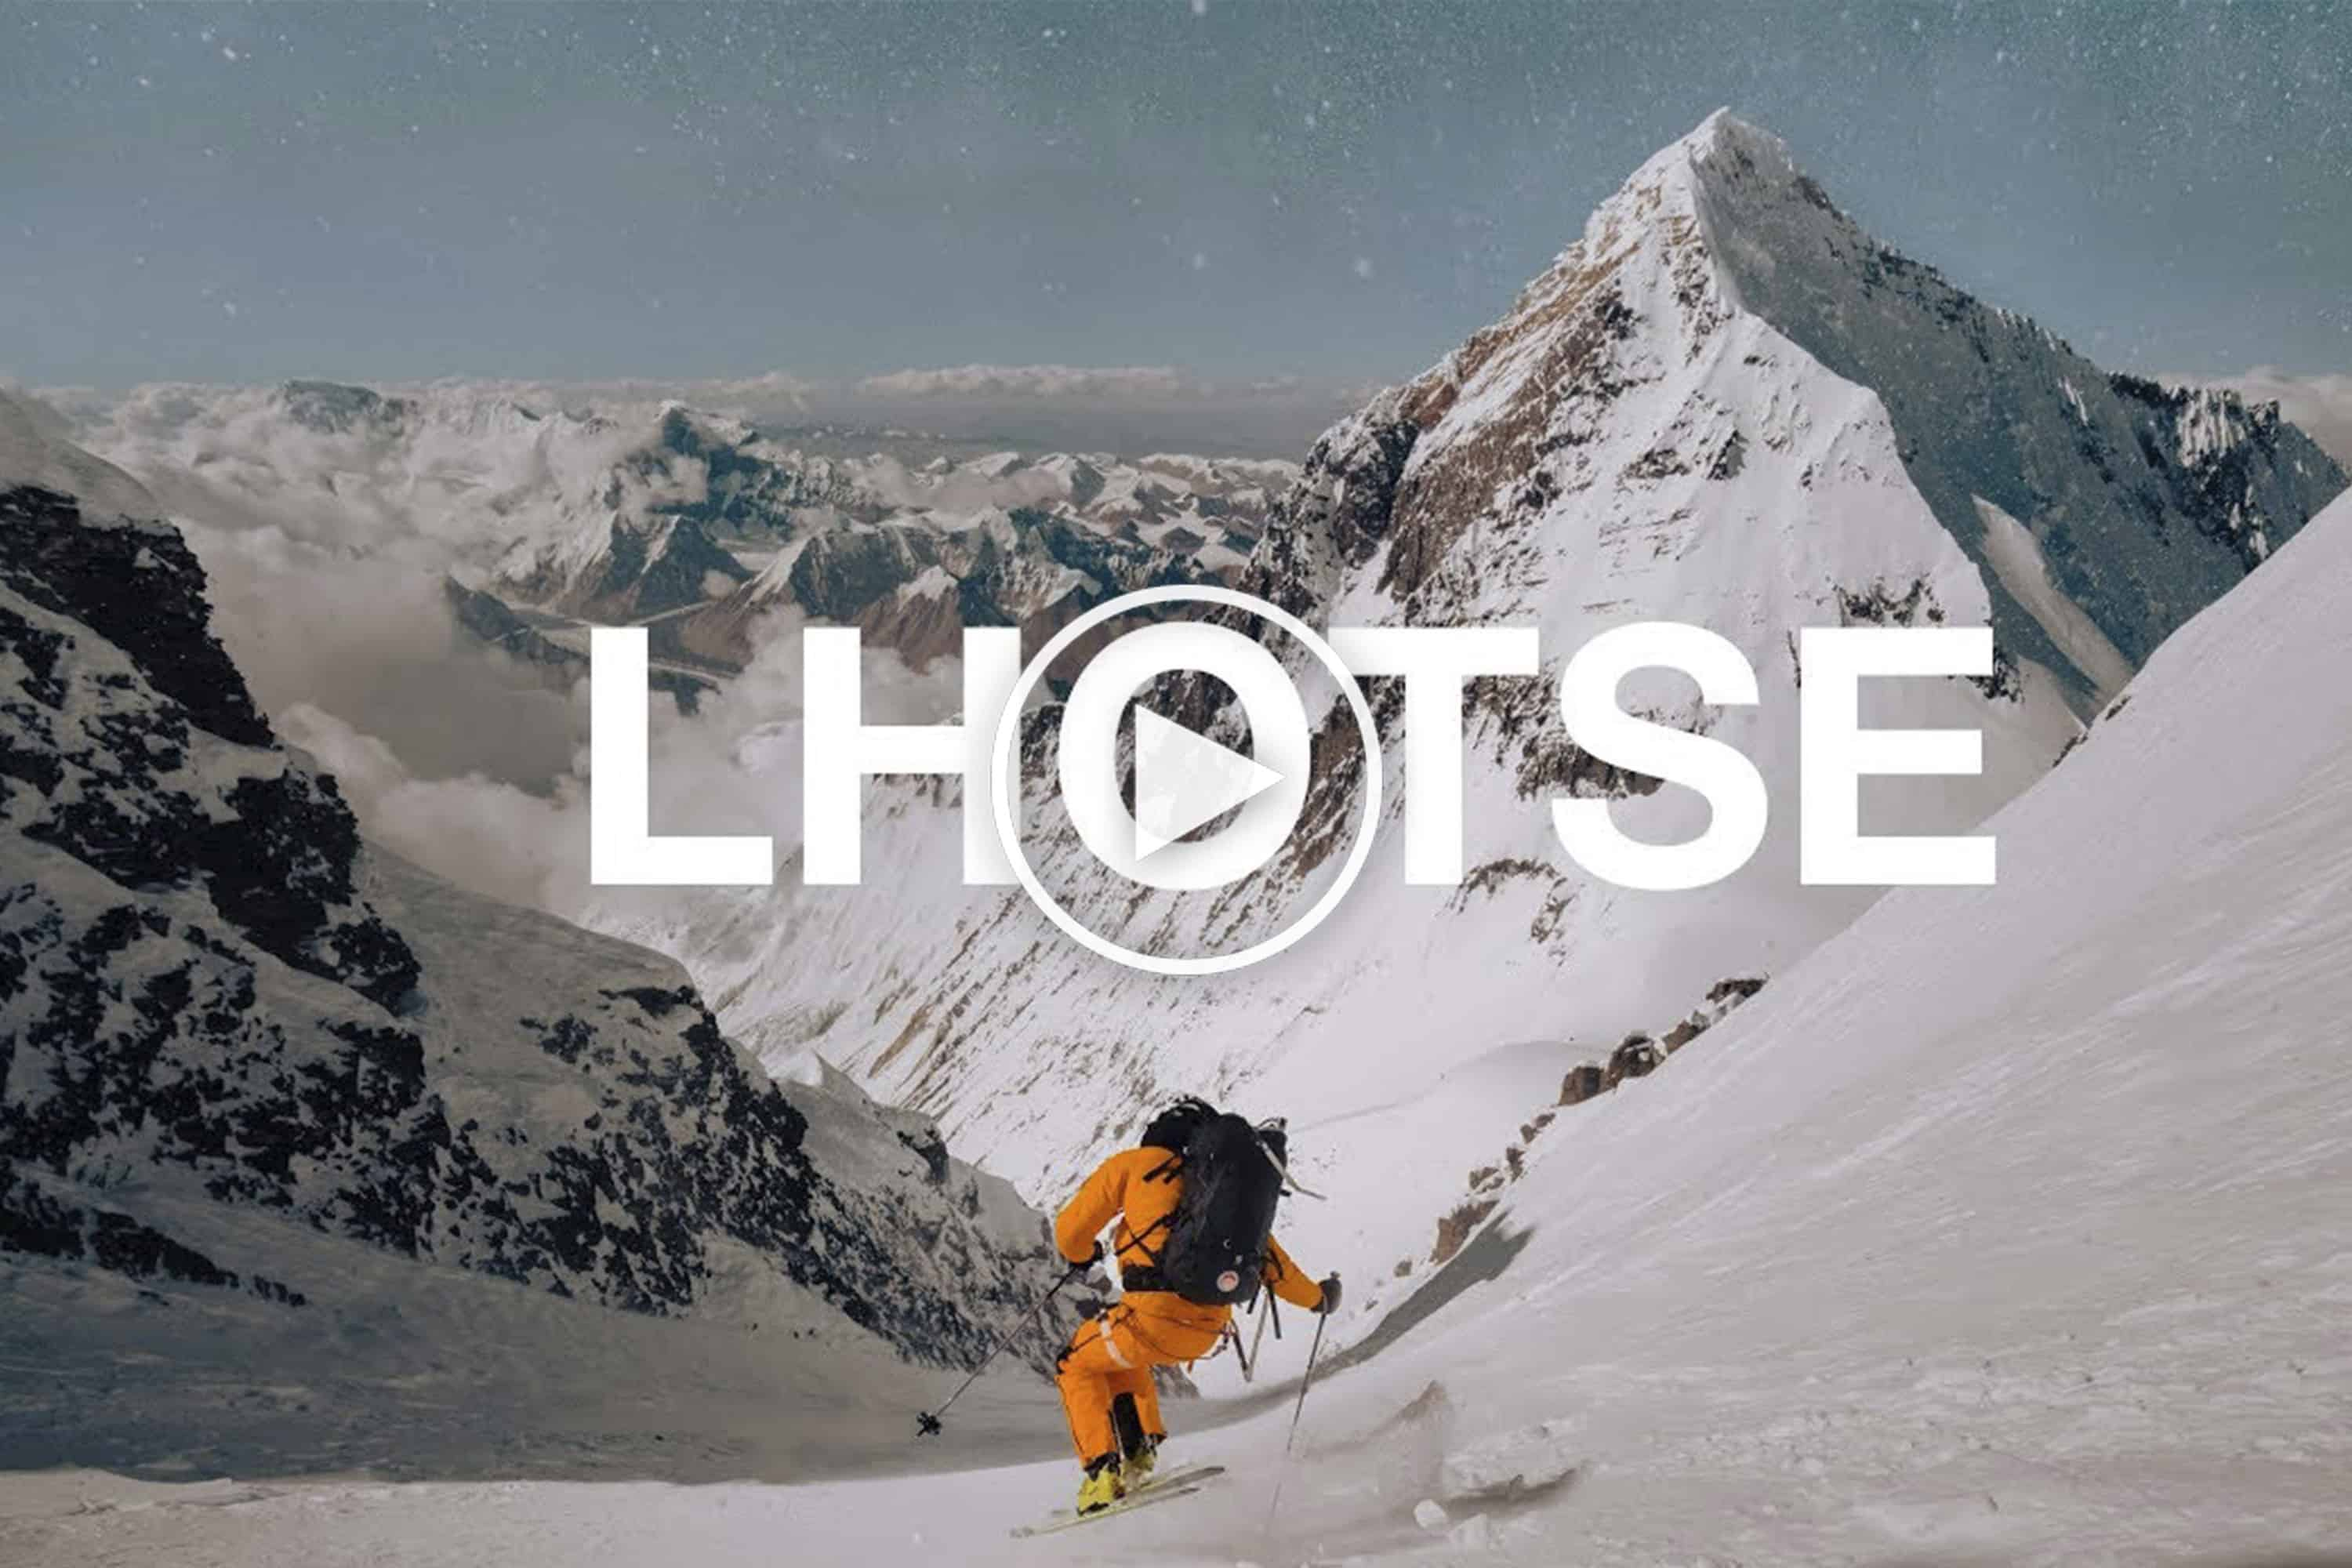 Lhotse - The Inspirational Story of the First Ski Descent of the World's Fourth Highest Mountain